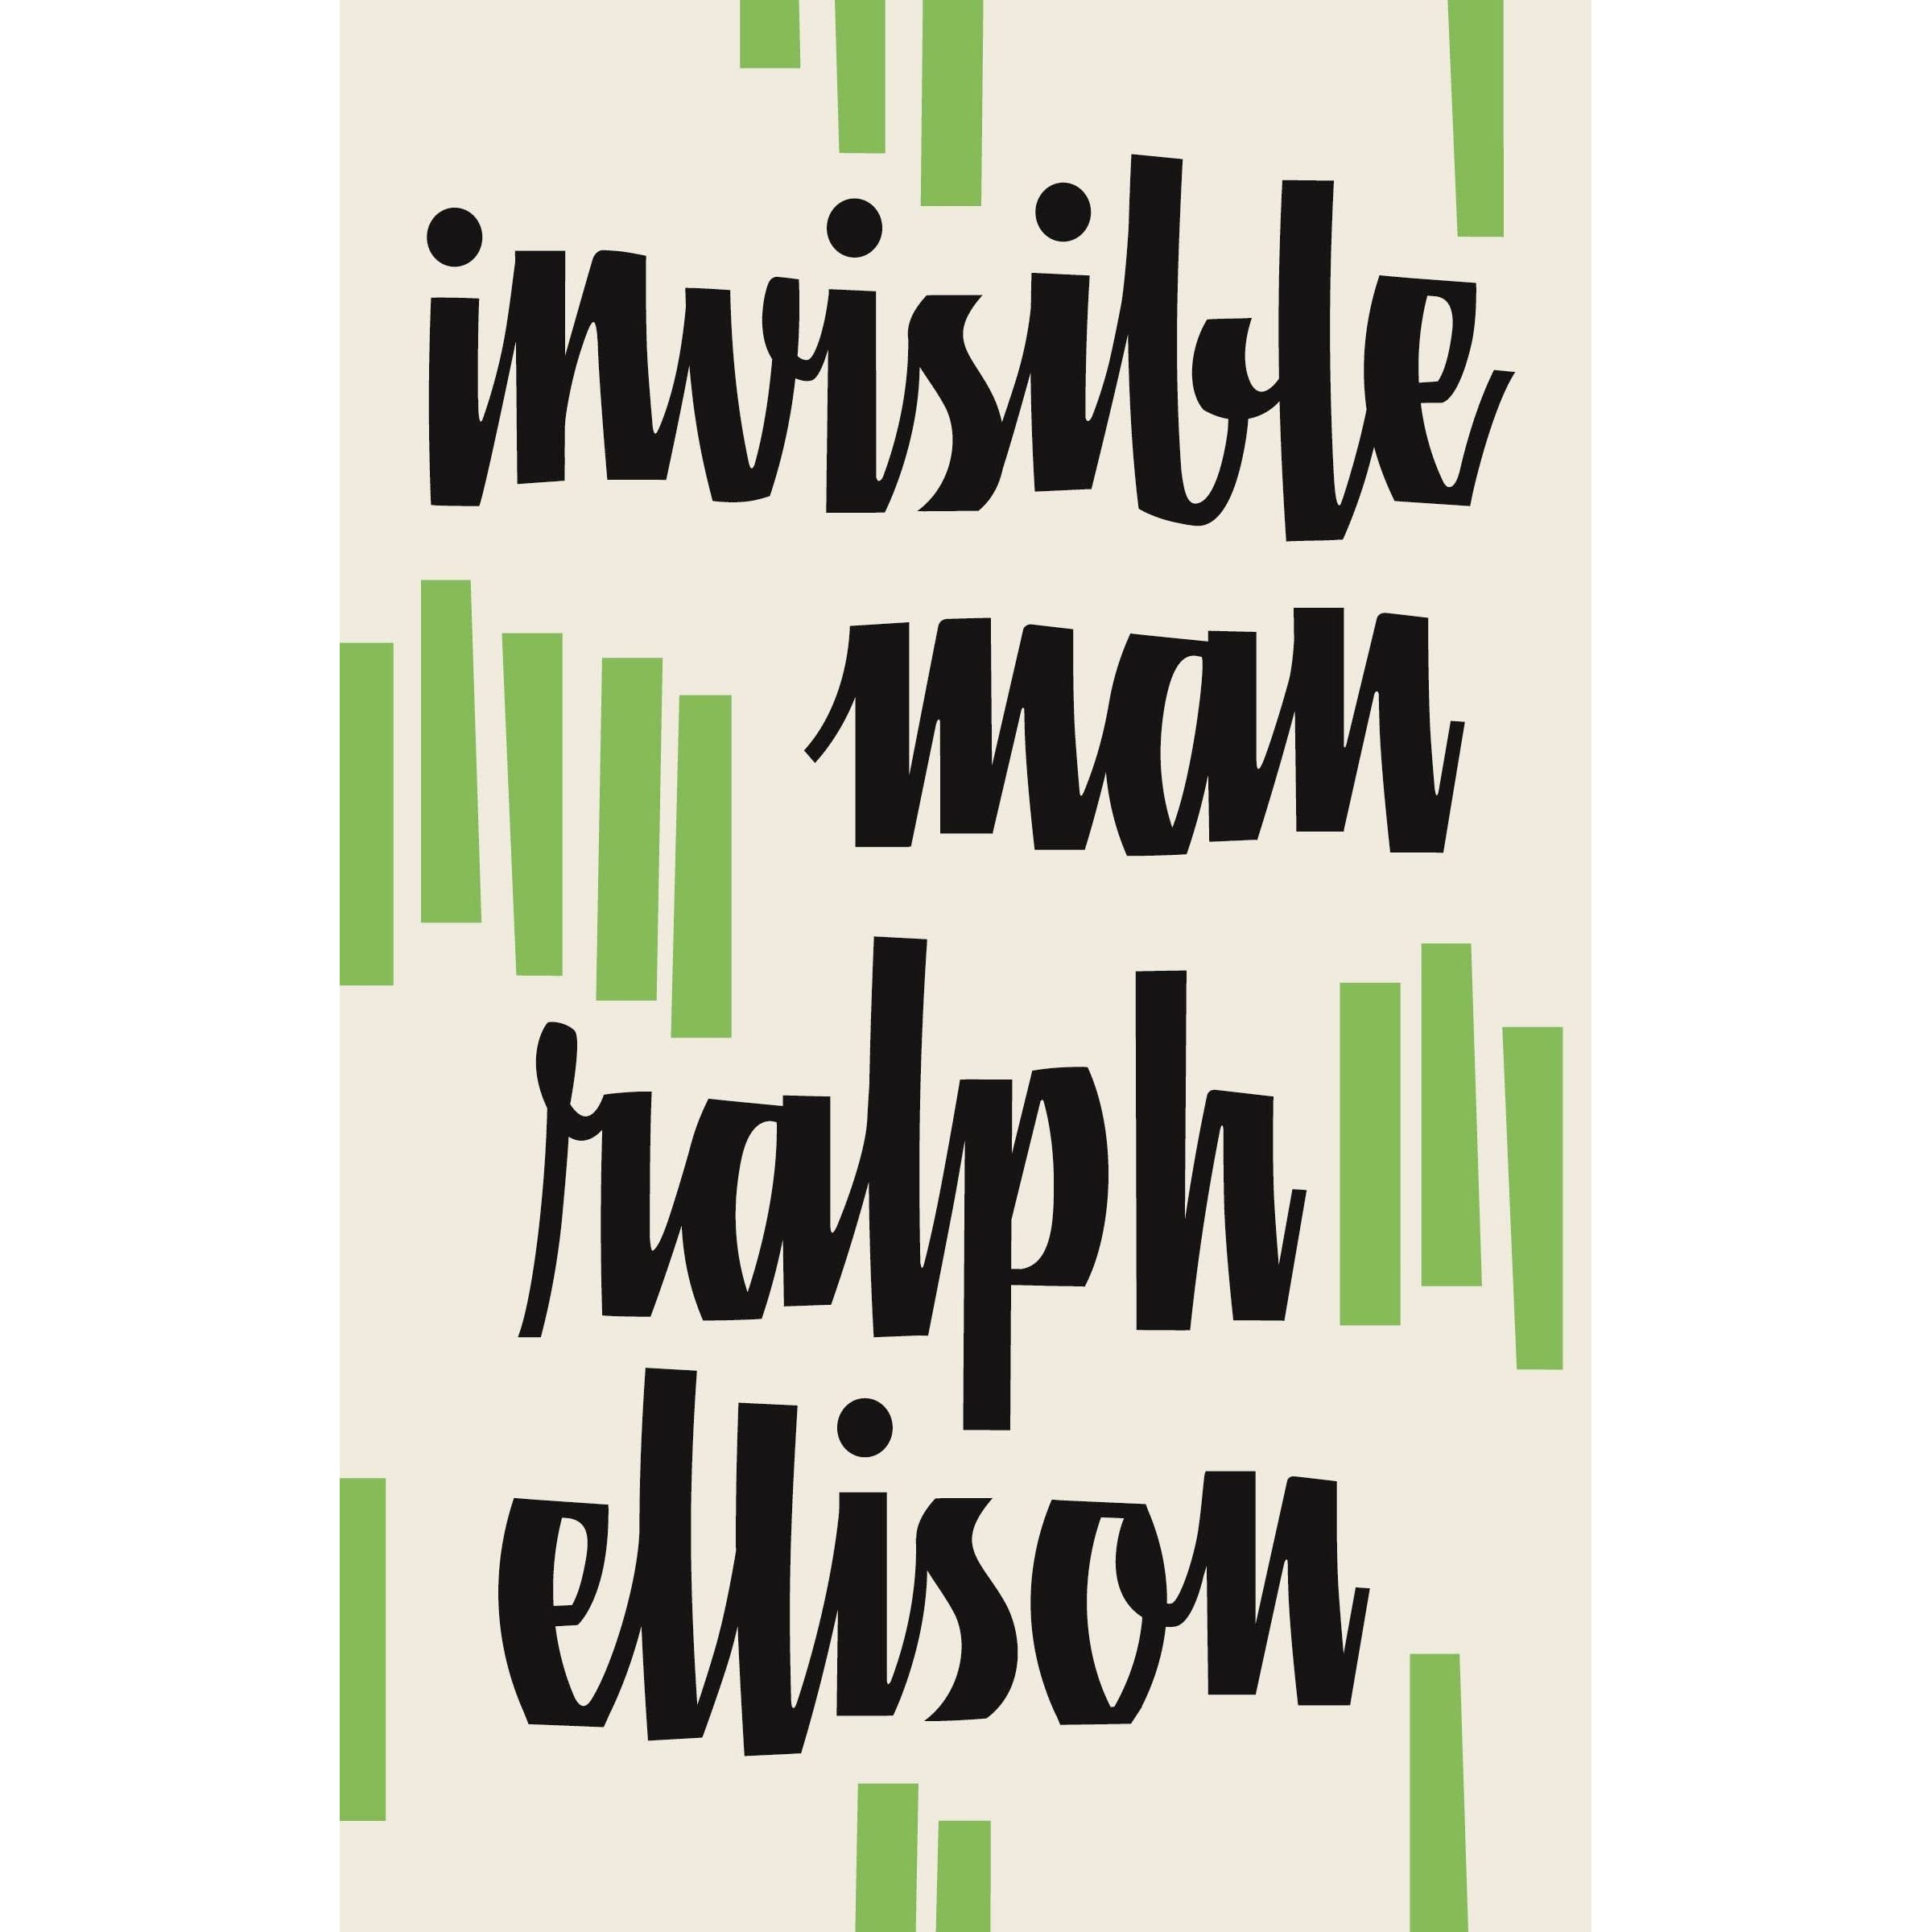 man google ralph ellison invisible audio book